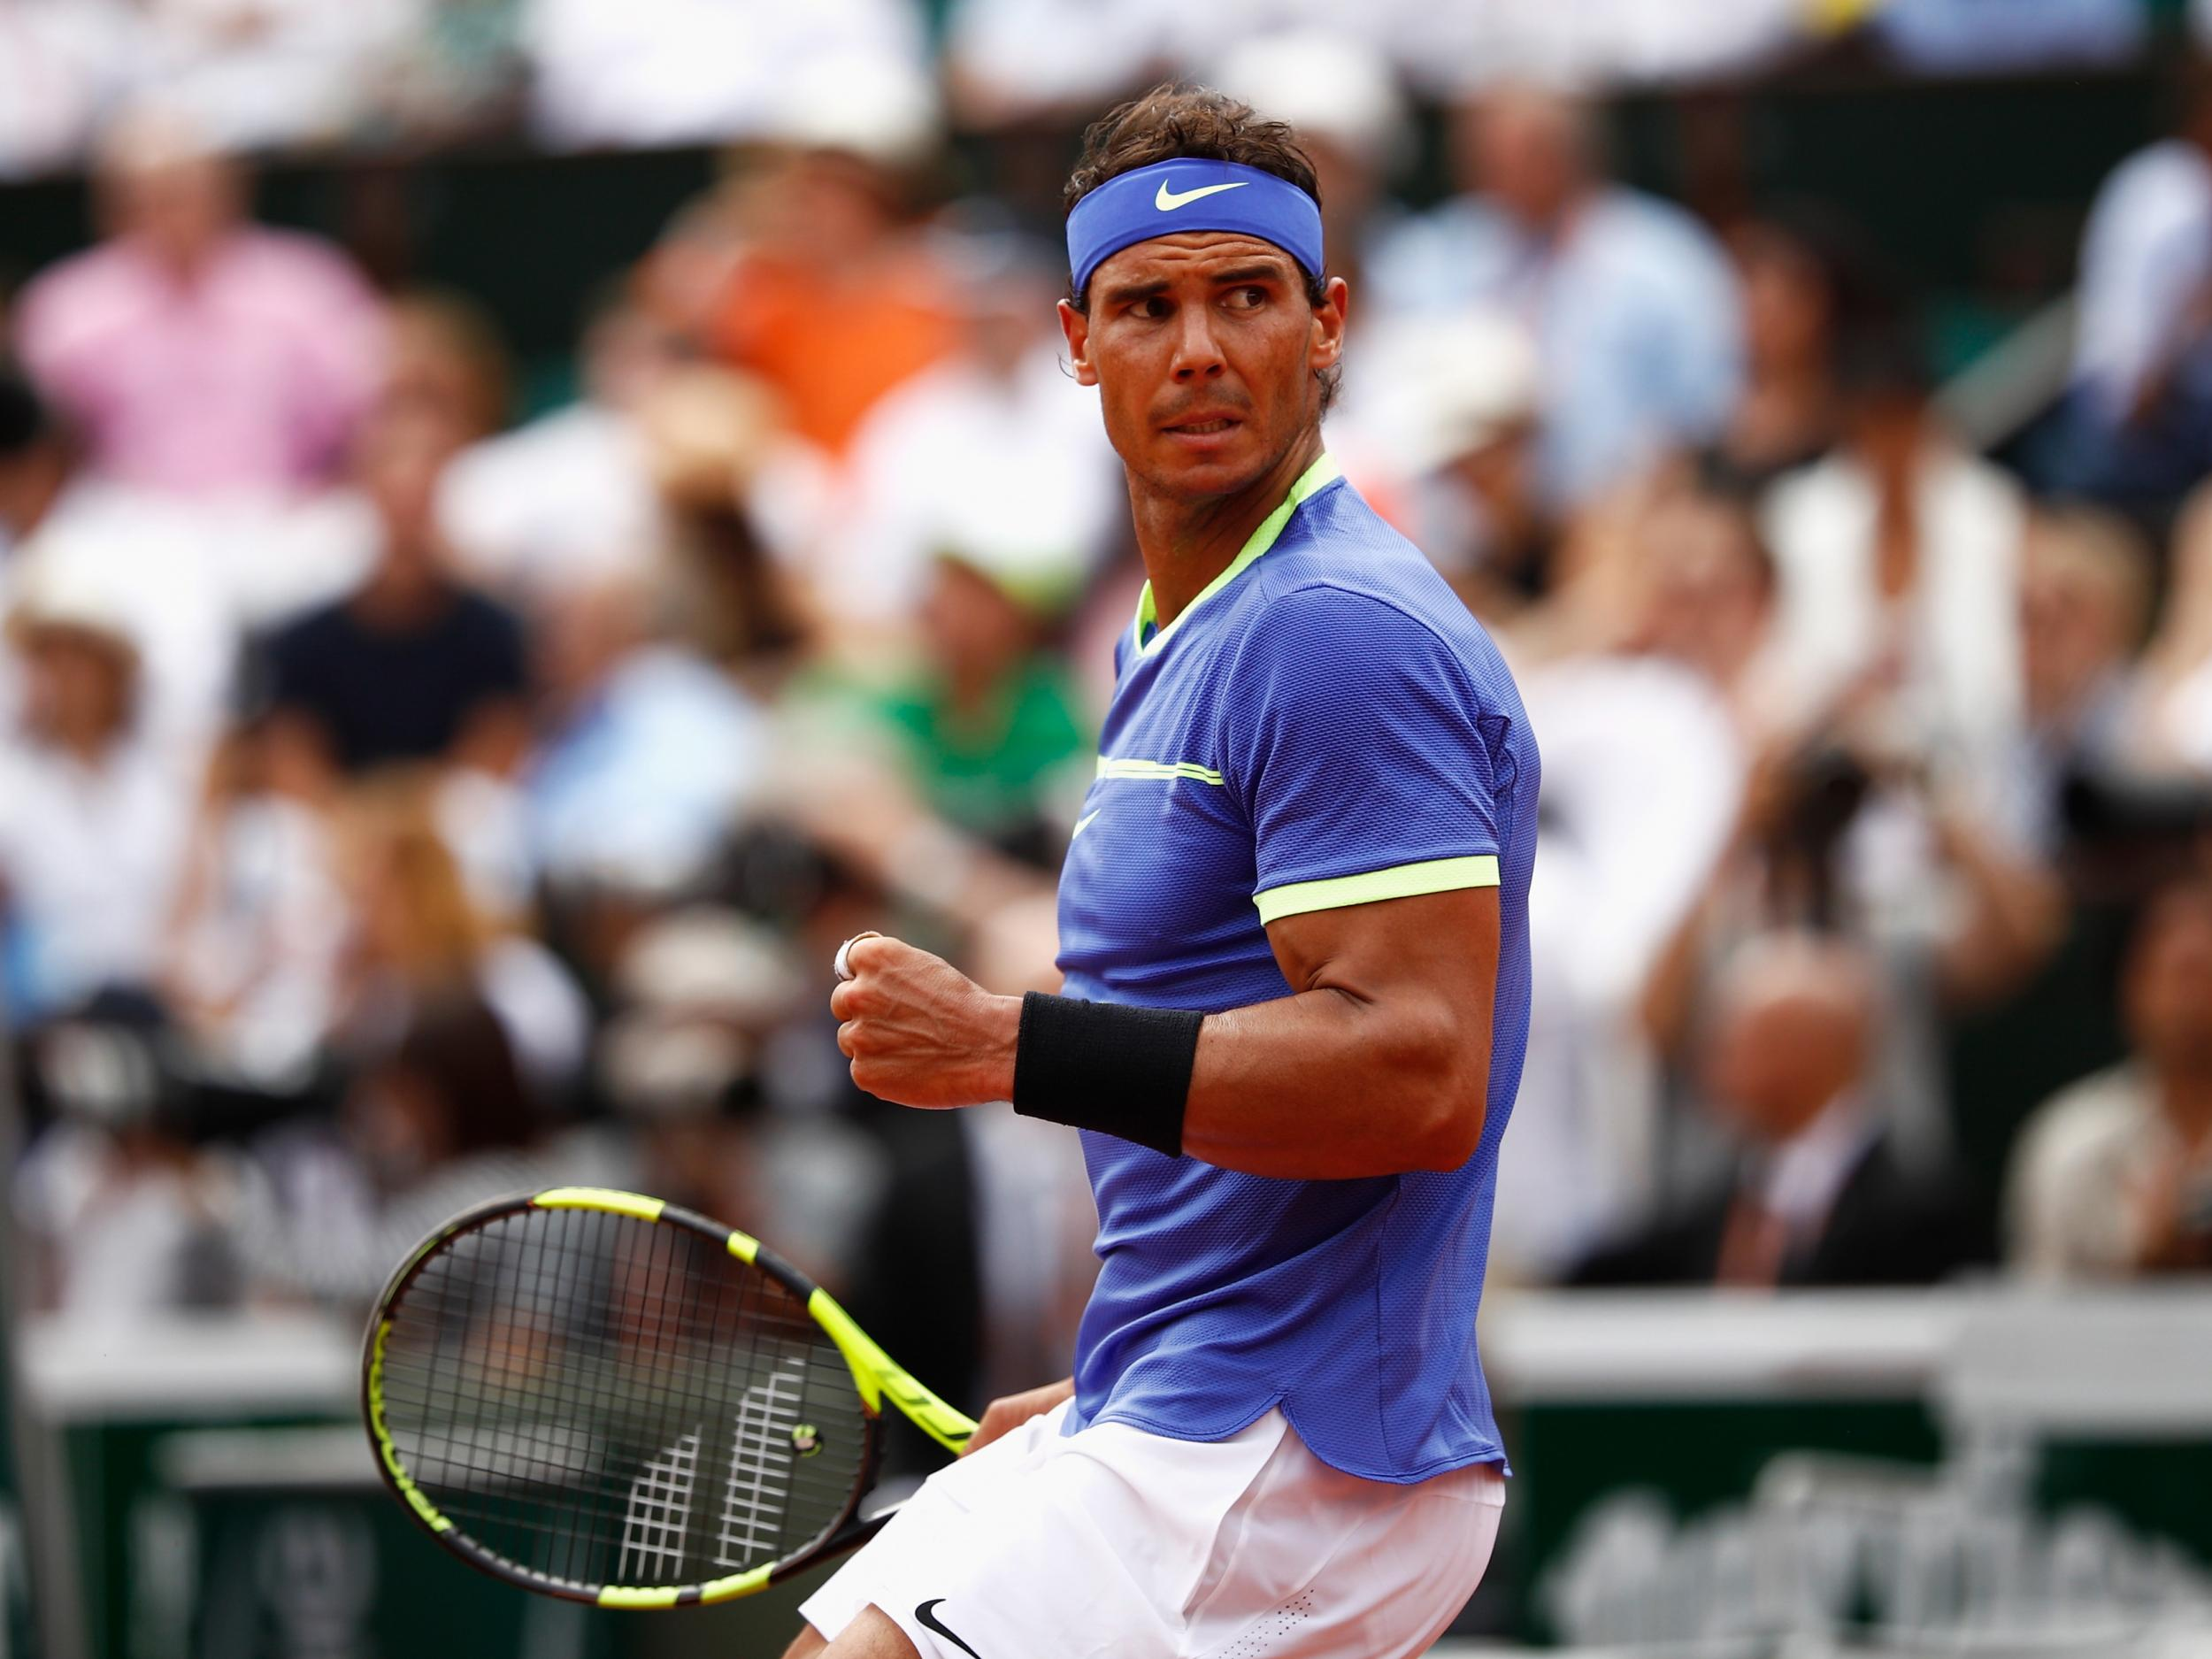 Nadal braced for 'complex' Djokovic in 52nd meeting ...